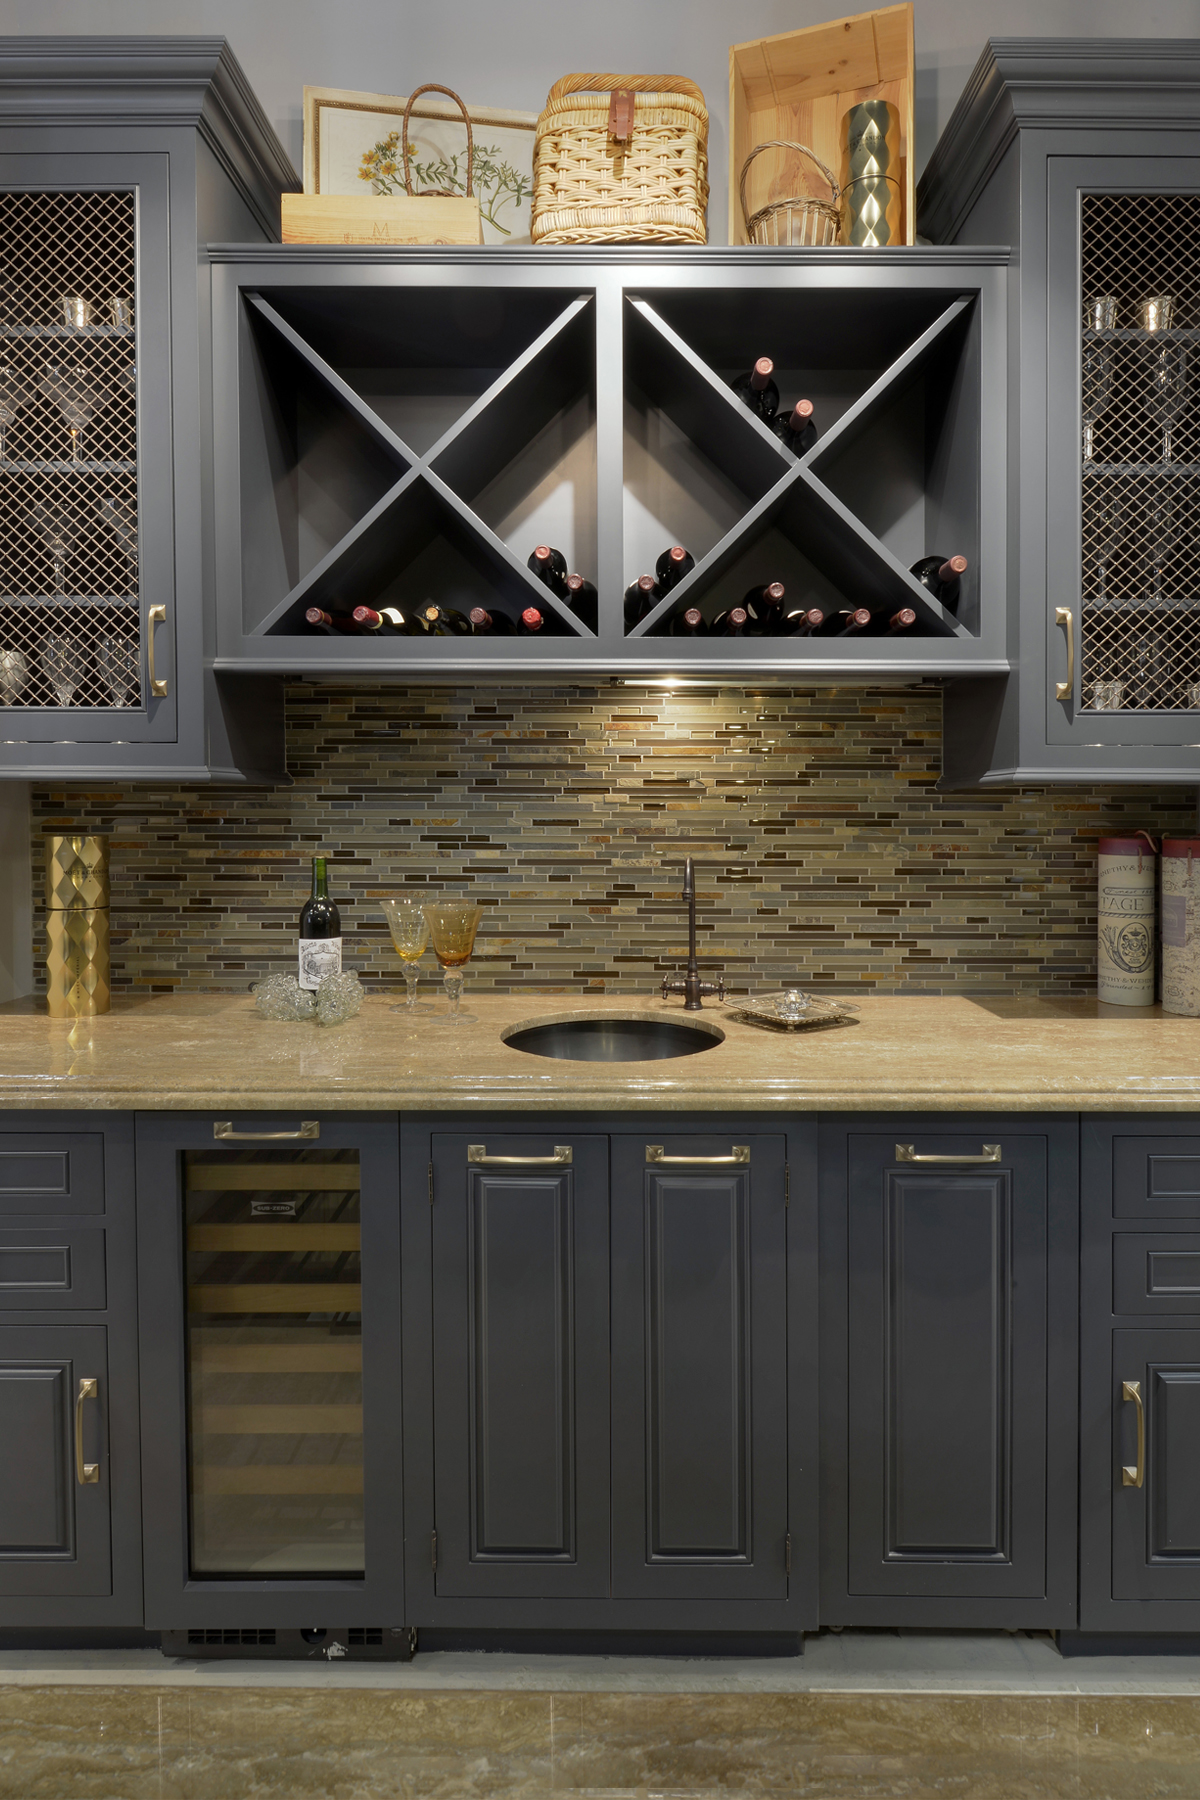 Traditional kitchen with fully custom Wood-Mode cabinets. Kitchen features blue painted wine racks, and cabinets with both glass fronts and wire mesh cabinet door inserts accented by brass hardware. Designed by Paula Greer, CKD of Bilotta Kitchens.